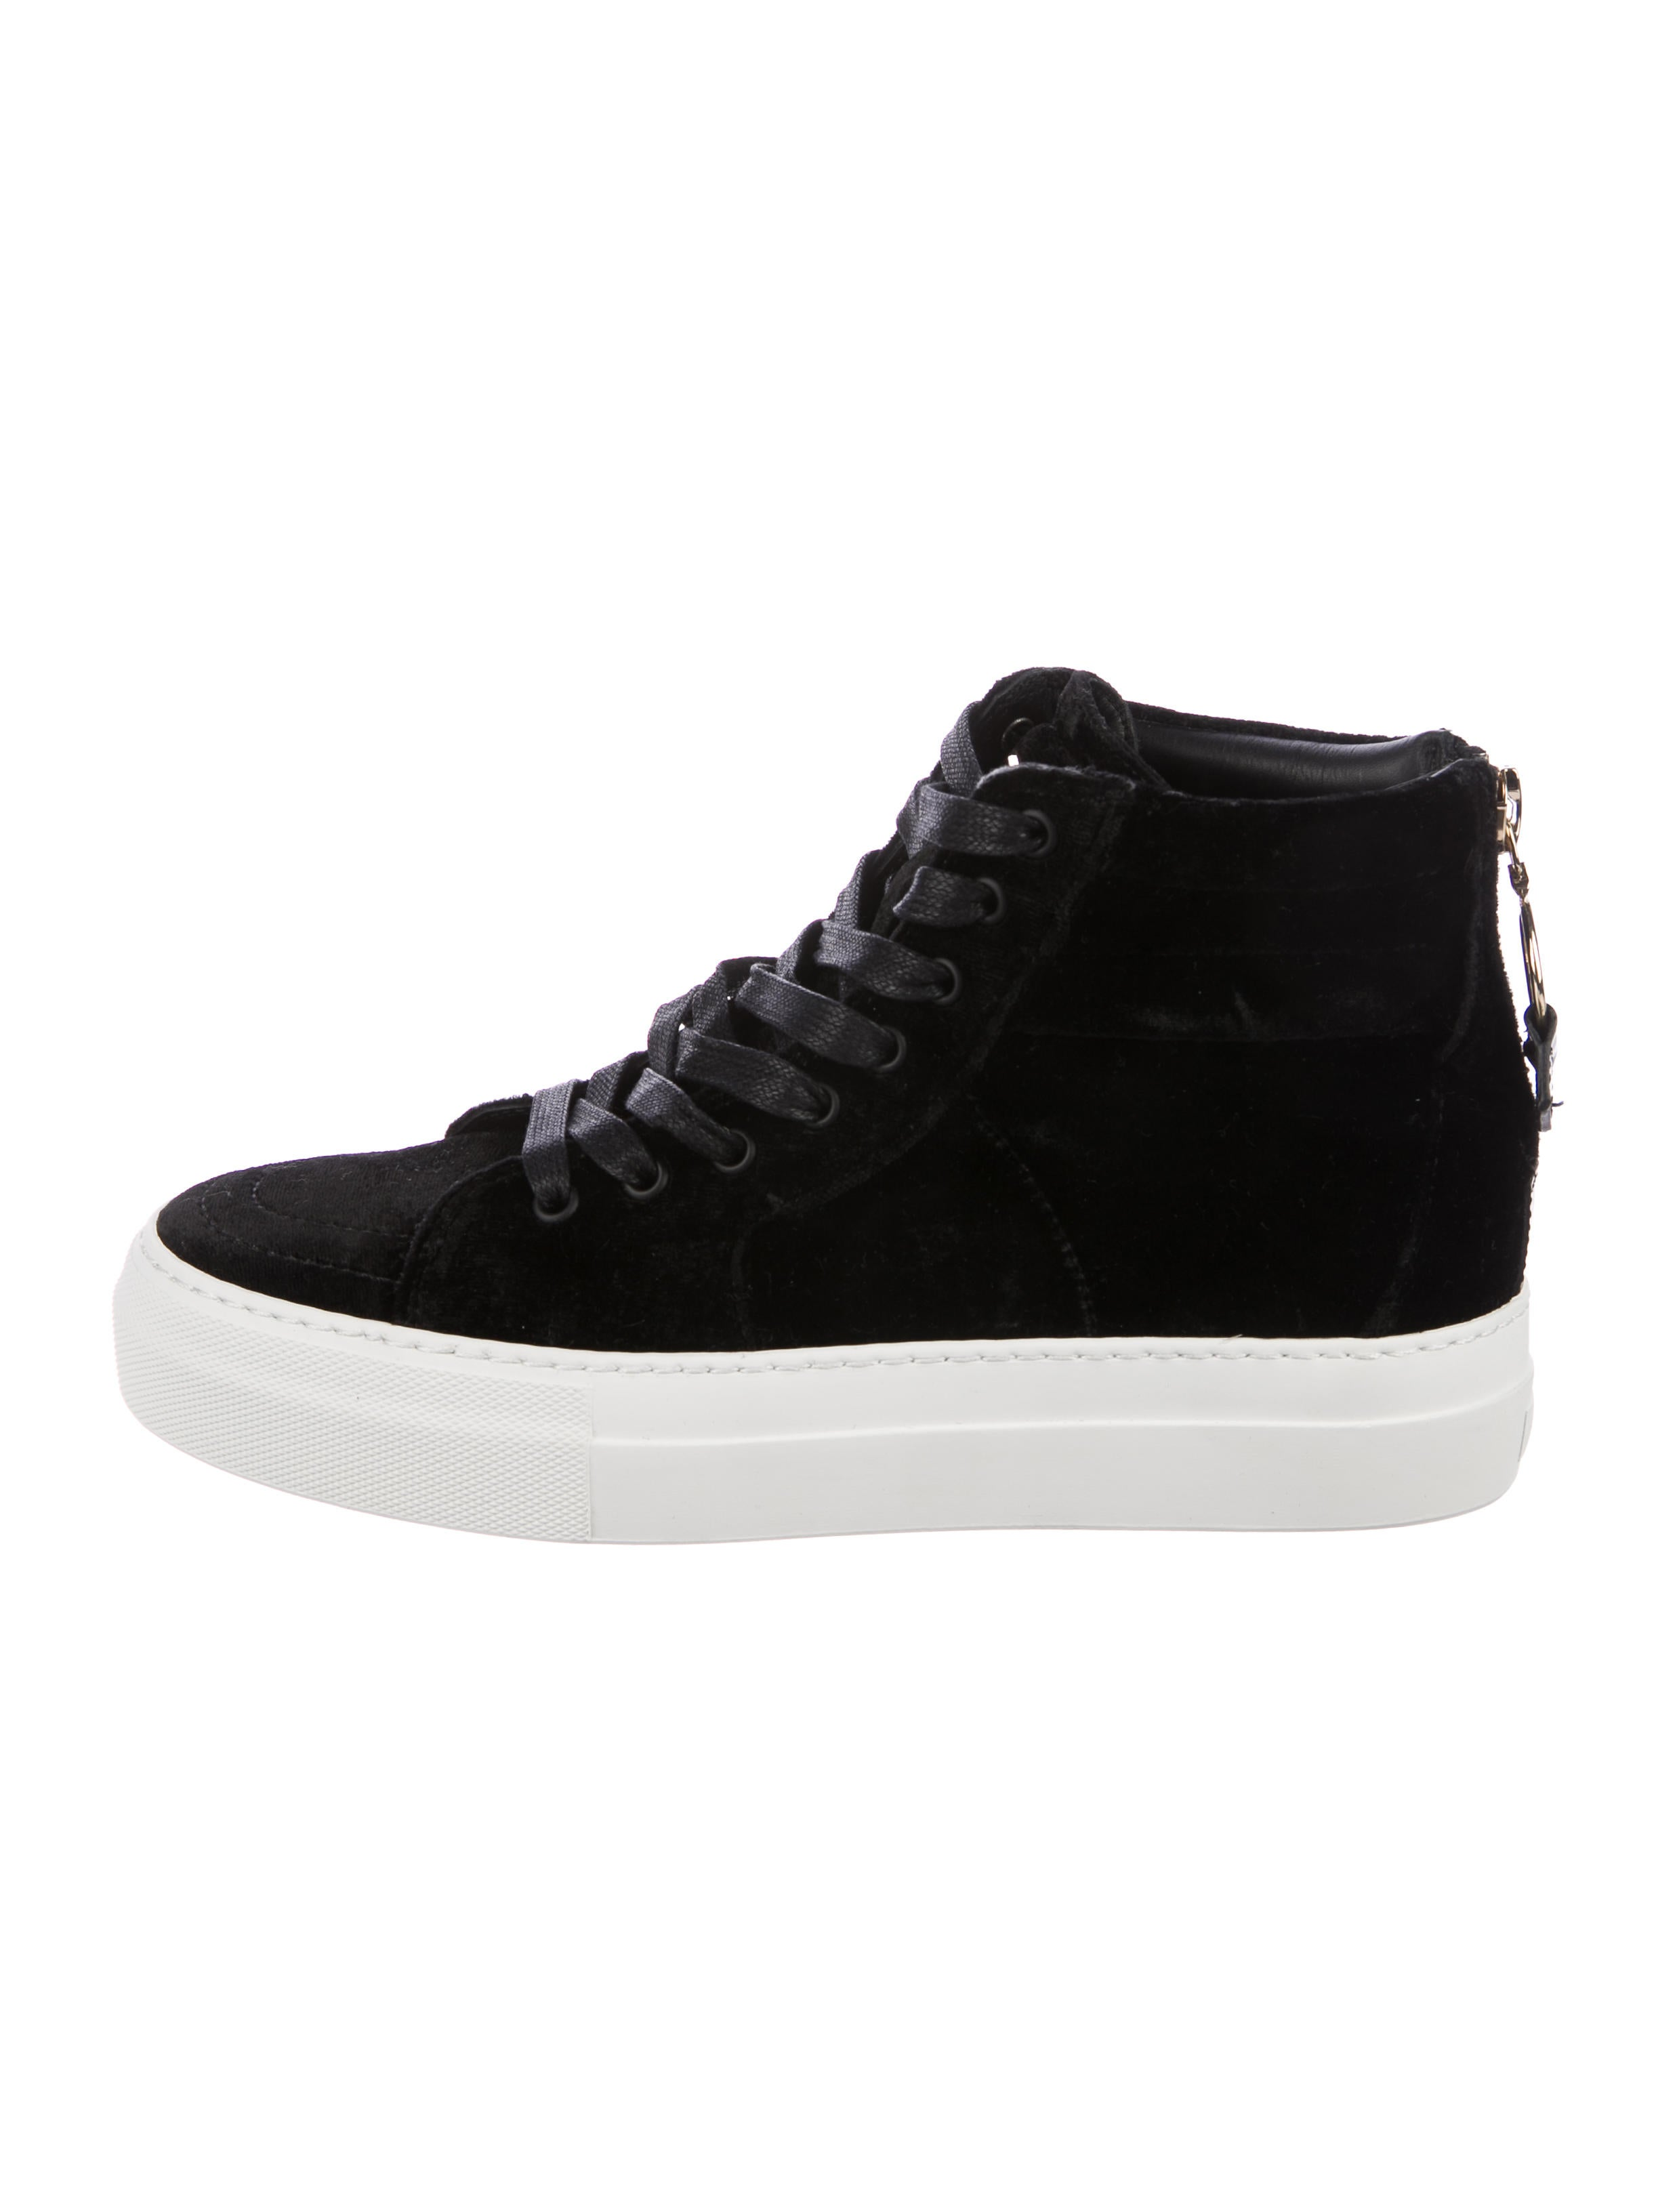 Buscemi 100MM High-Top Sneakers w/ Tags clearance authentic idnGQJQ